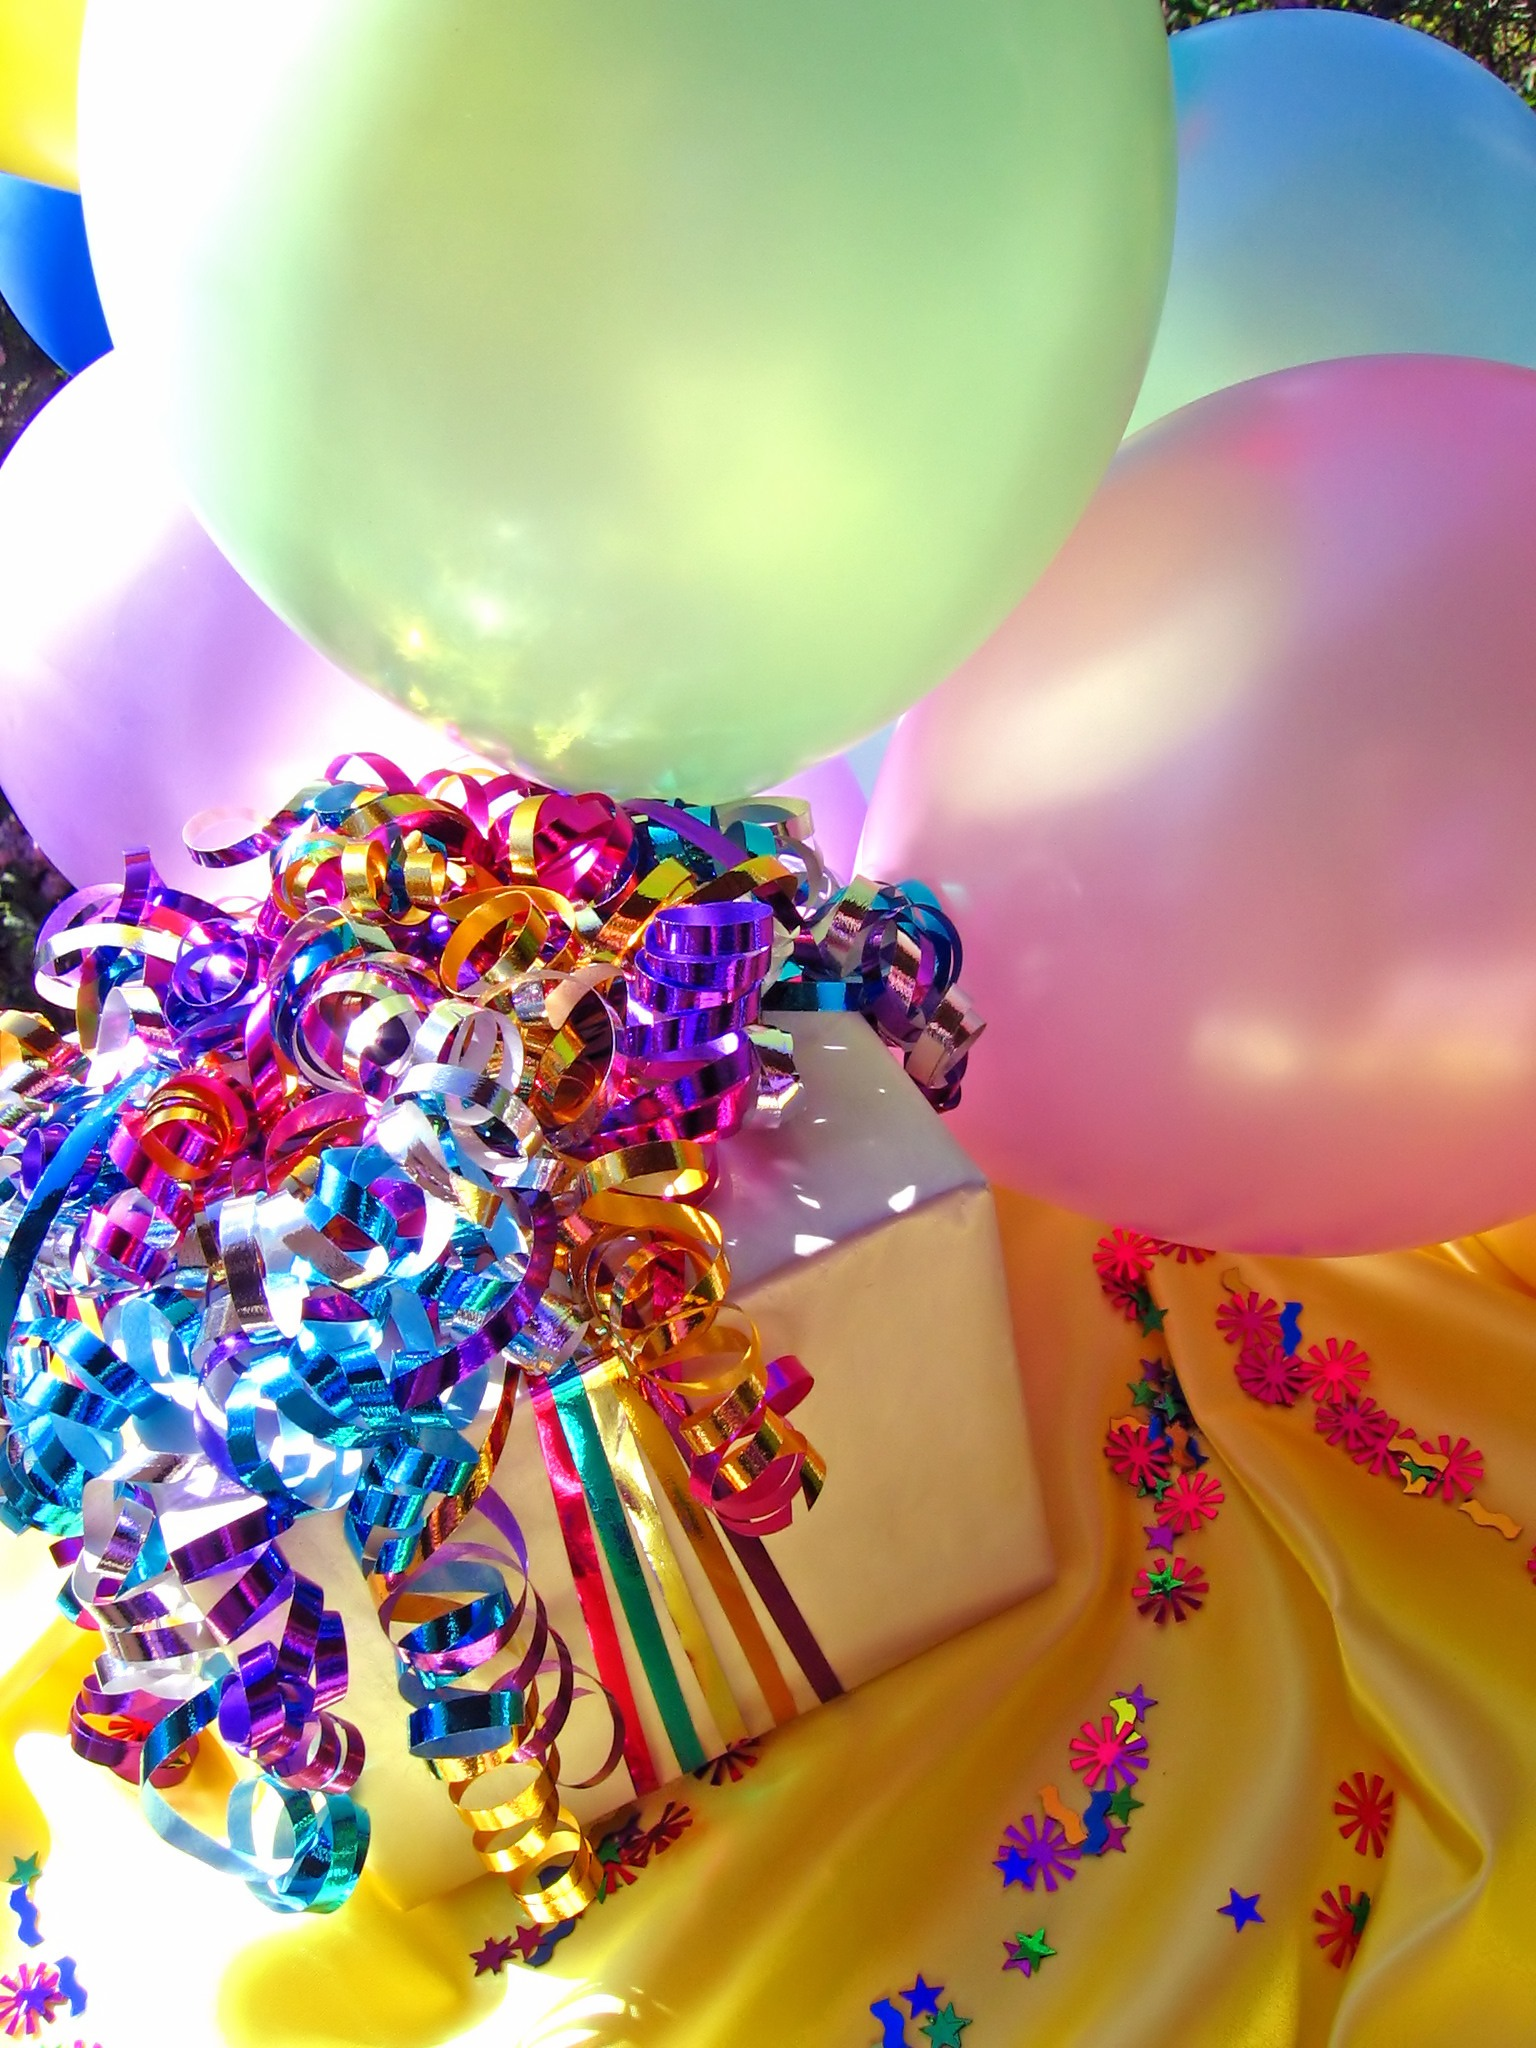 Backyard Theme Parties: Outdoor Party Ideas for Kids ...